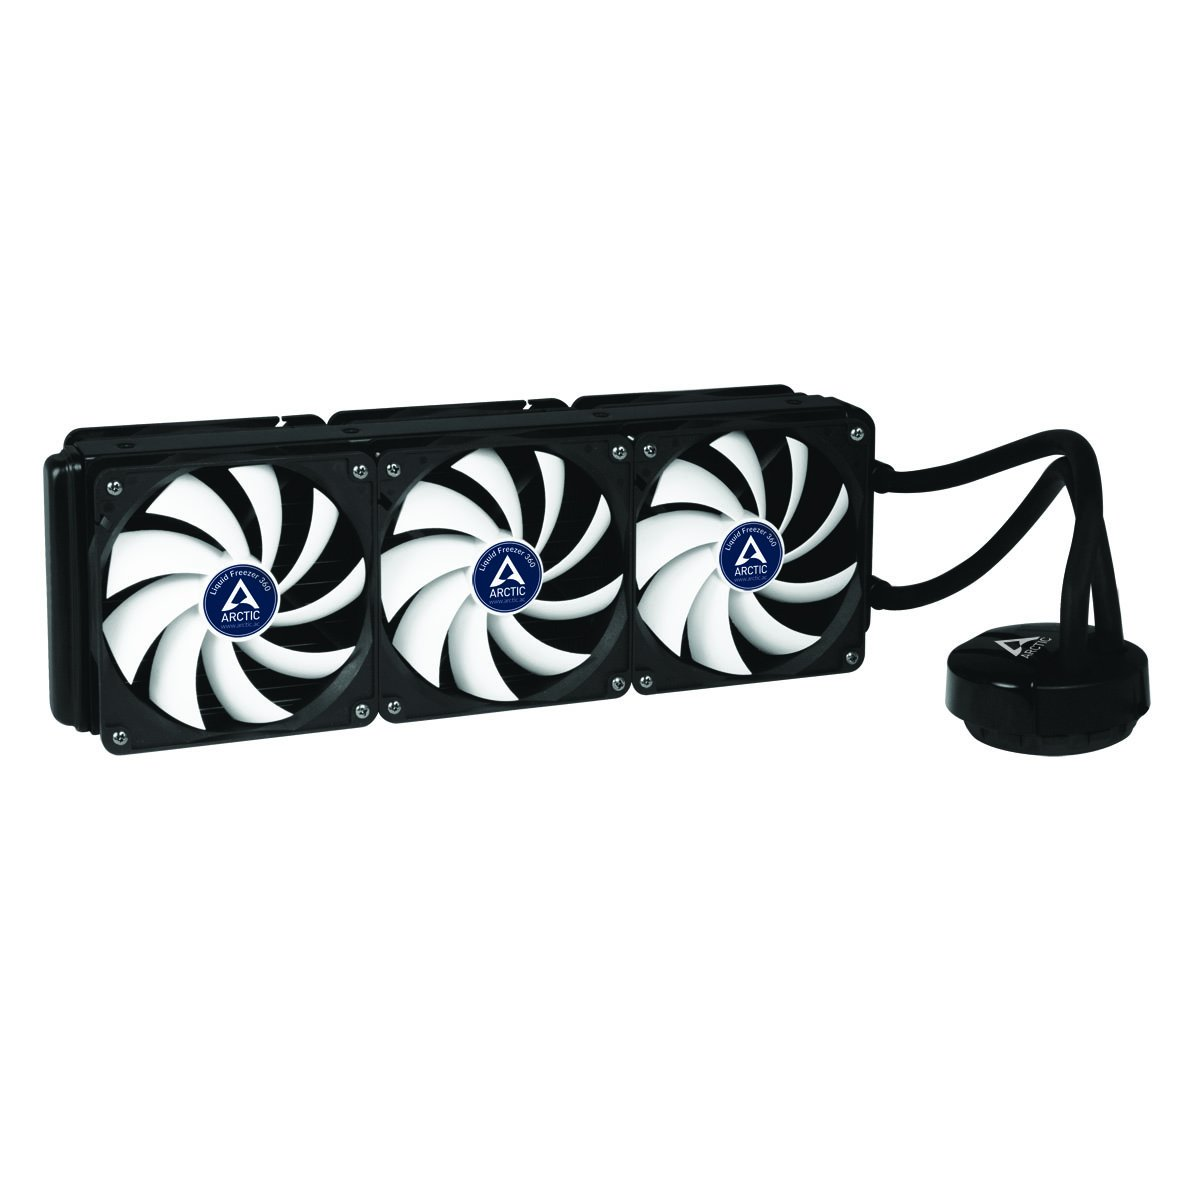 ARCTIC Liquid Freezer 360, High Performance CPU Water Cooler with 6 x 120 mm Low Noise Fans, 394 x120 mm Radiator, MX-4 Thermal Compound included